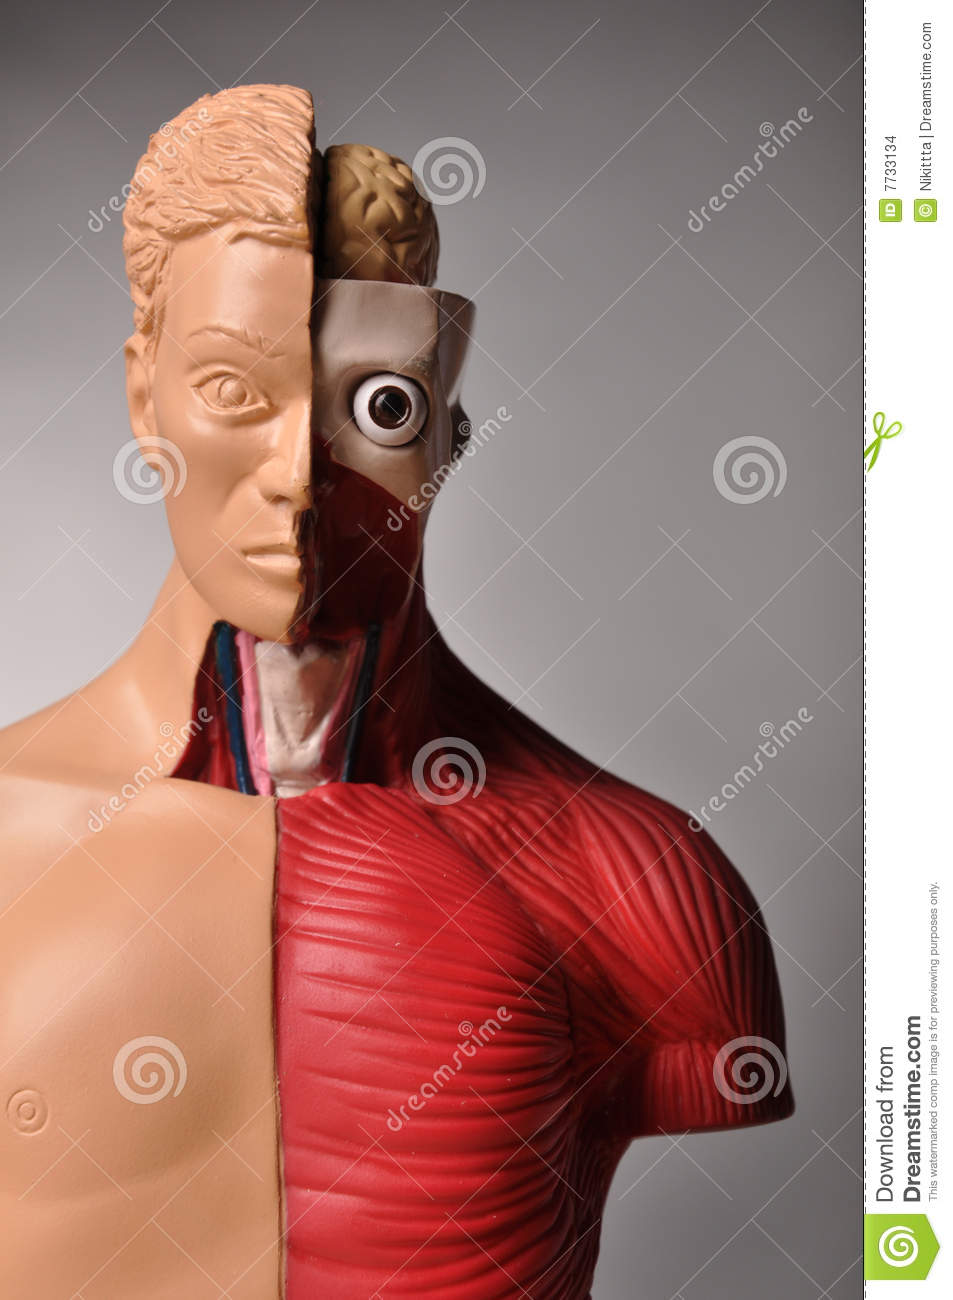 Look Inside Body Human Anatomy Stock Photo Image Of Away Lungs